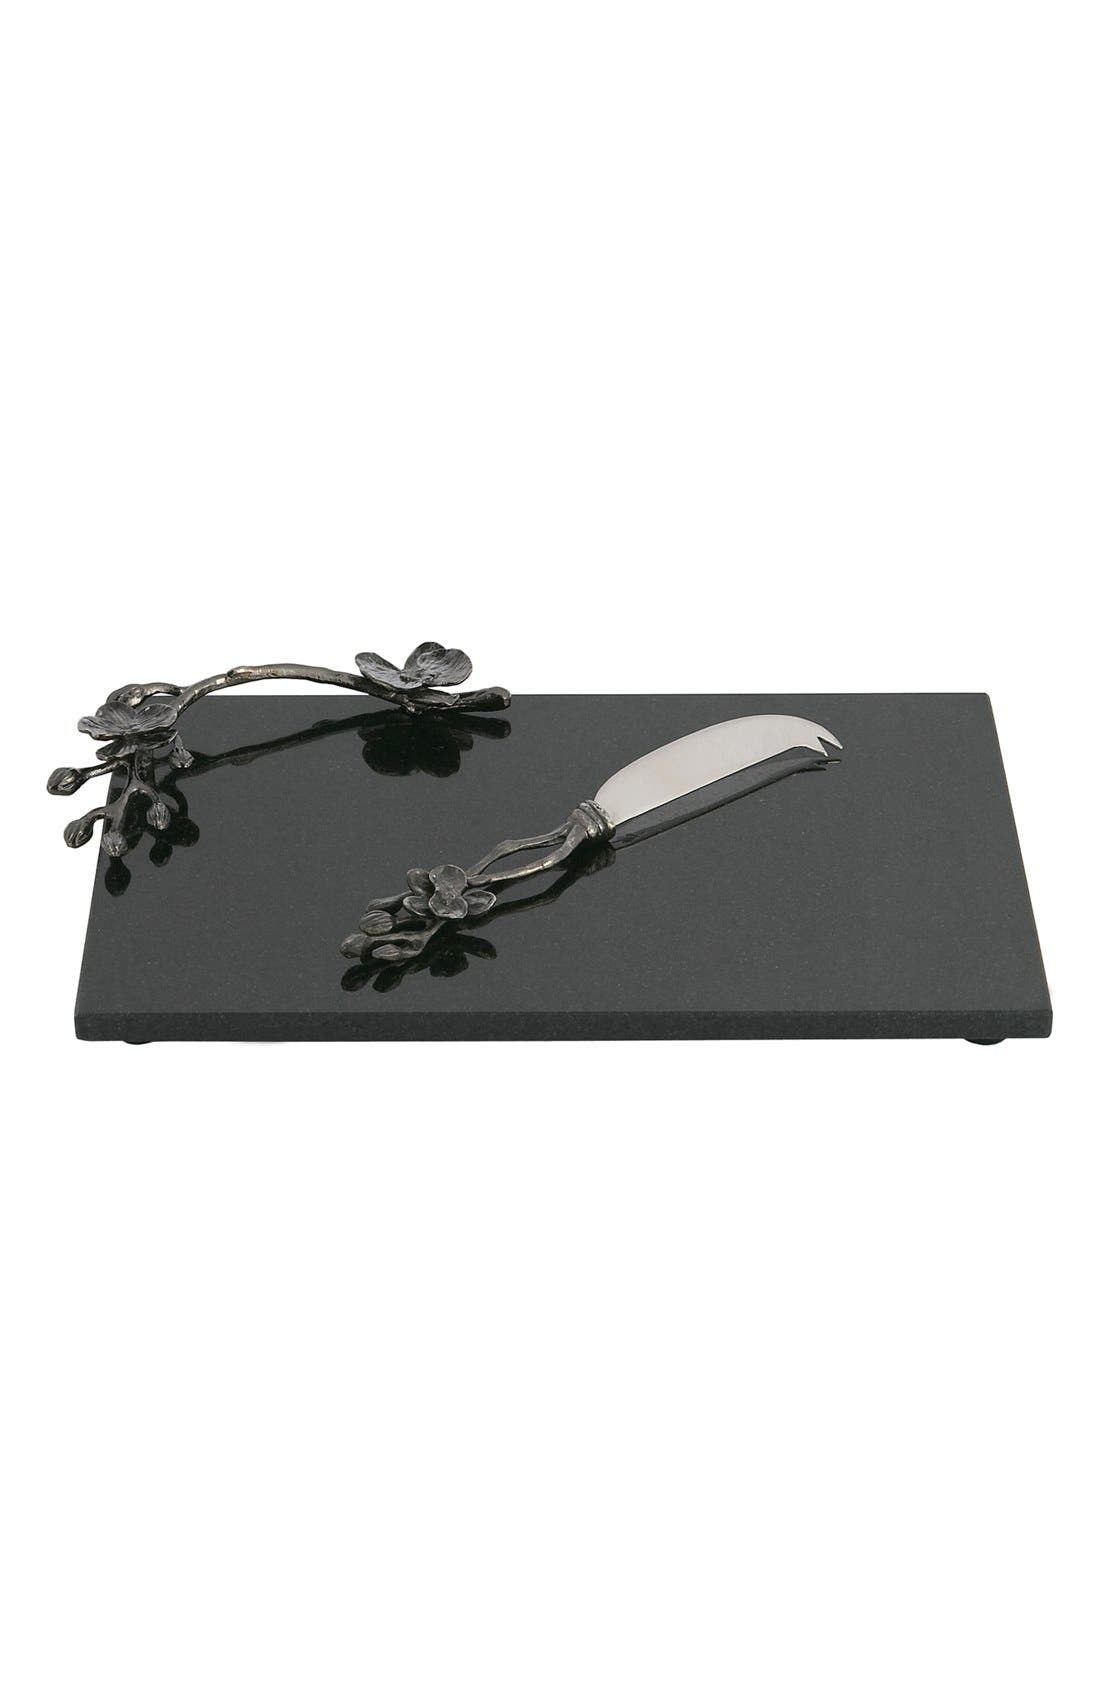 MICHAEL ARAM 'Black Orchid' Small Cheese Board